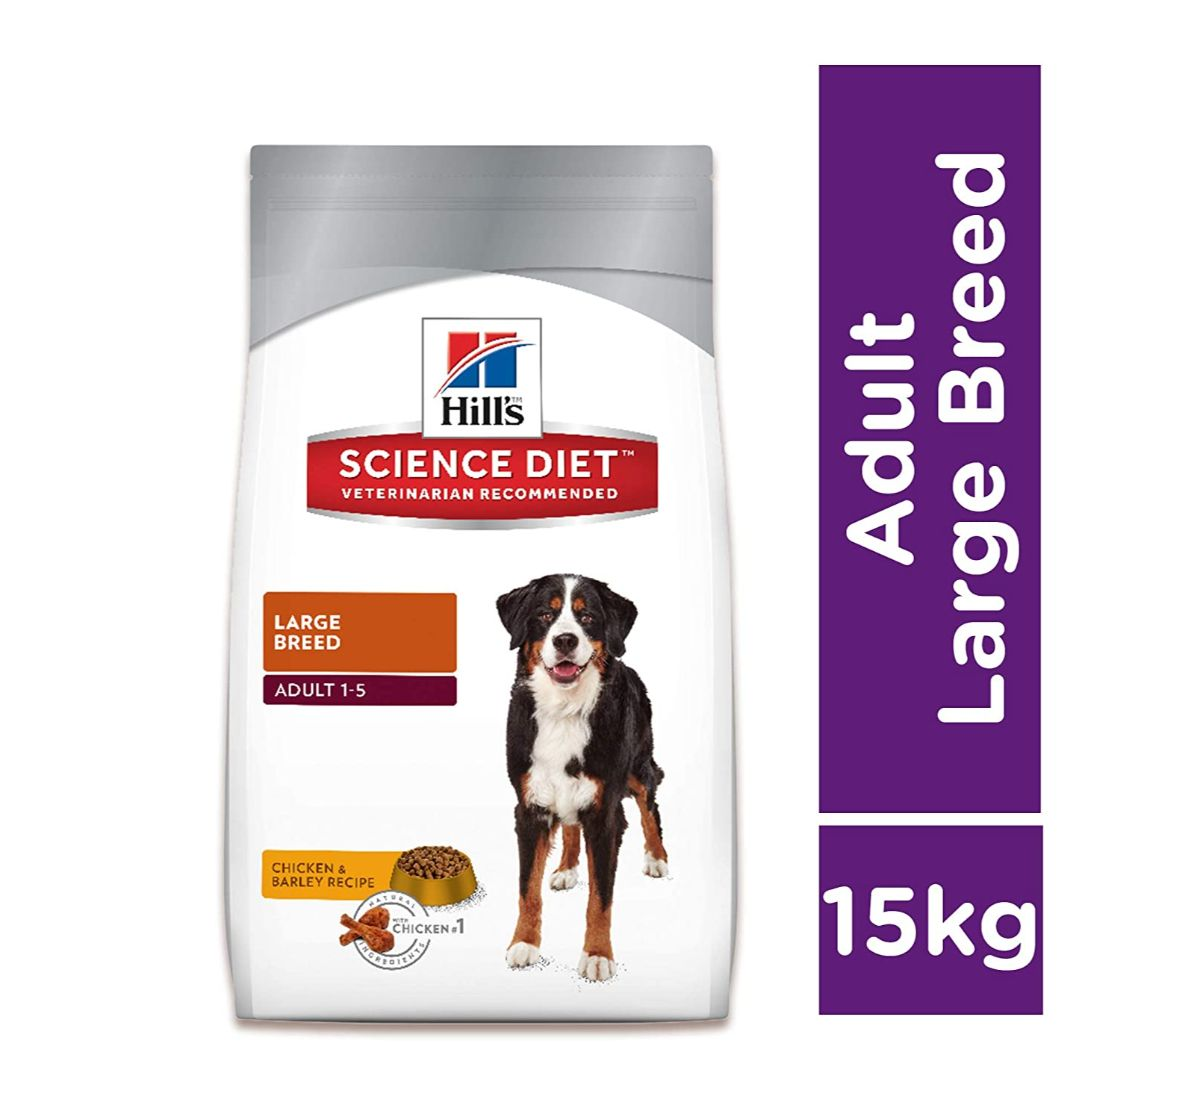 Hill's Science Diet Mature Adult Canine Large Breed Chicken Rice & Barley Dry Dog Food - 15 Kg